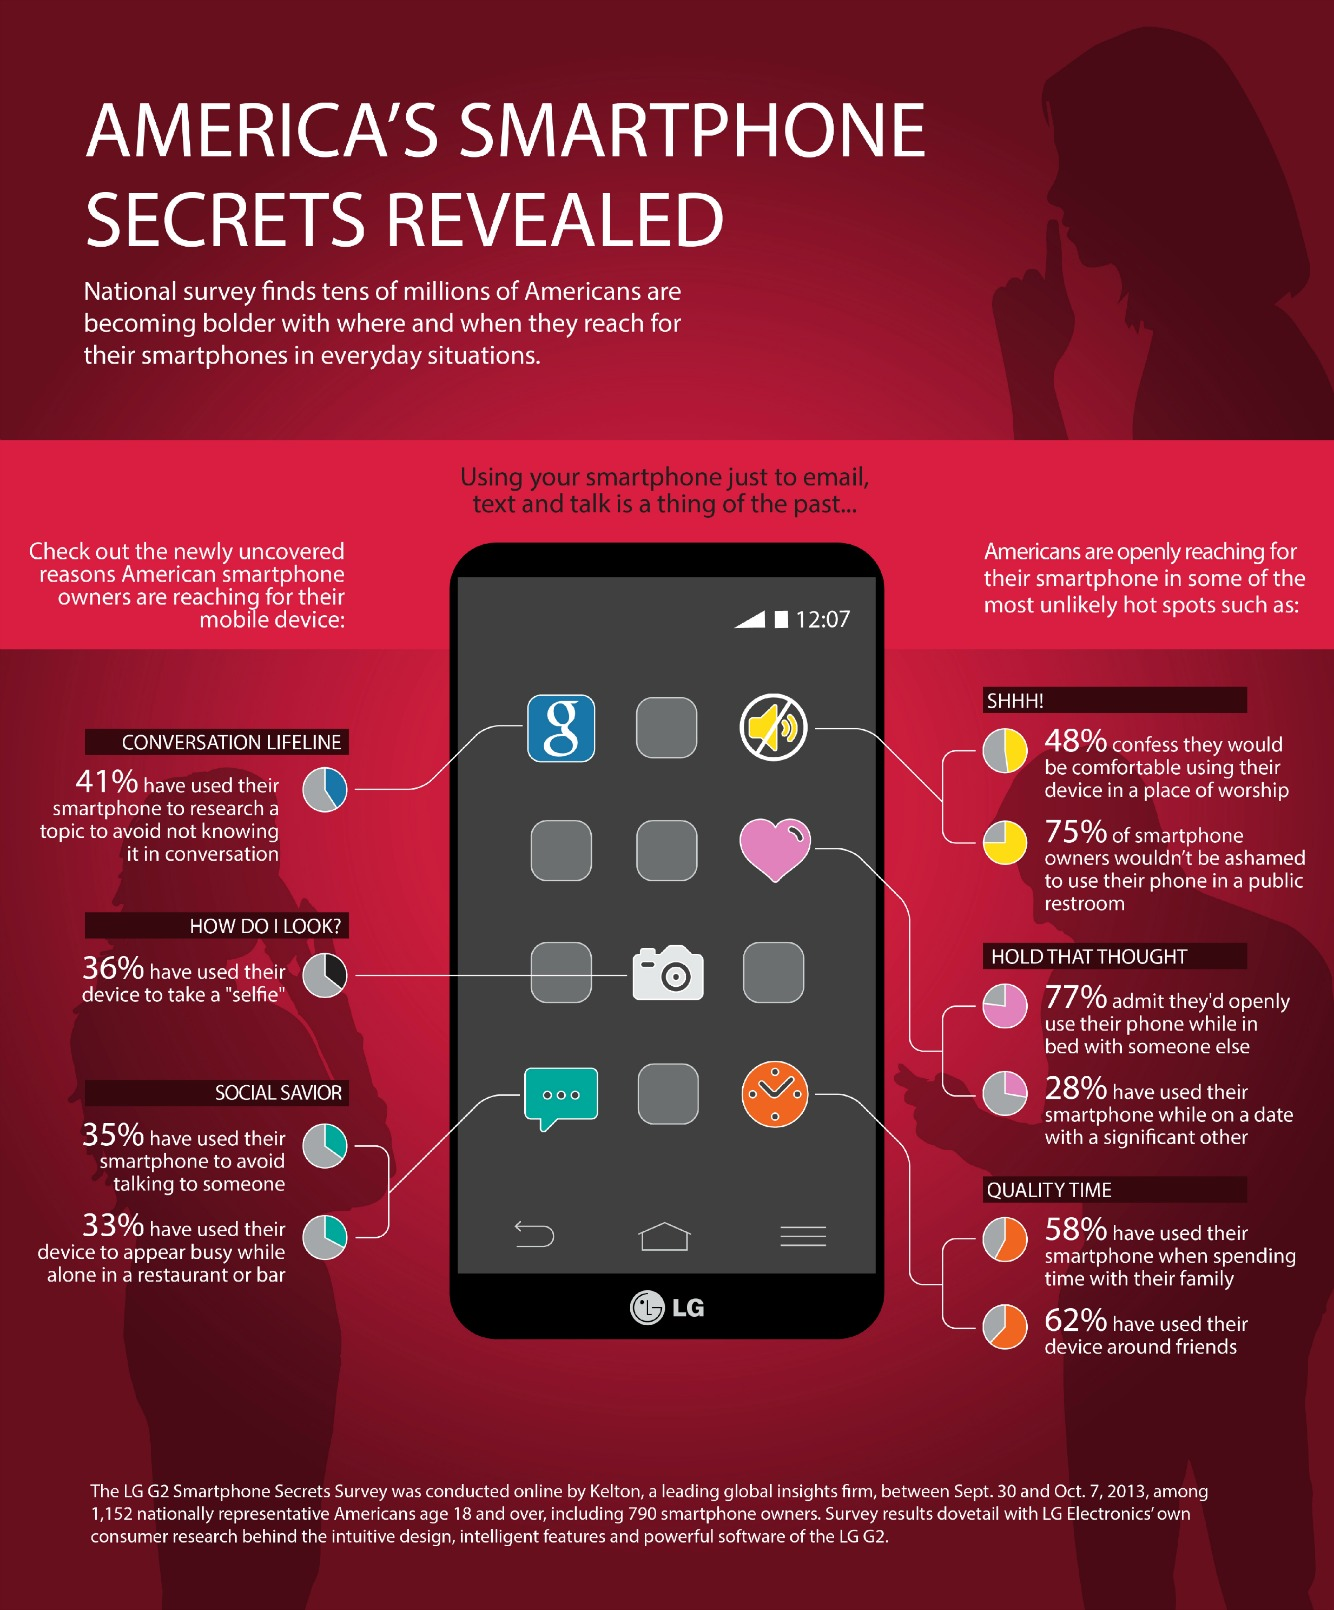 5 Unreal Facts From a Smartphone Usage [Infographic]